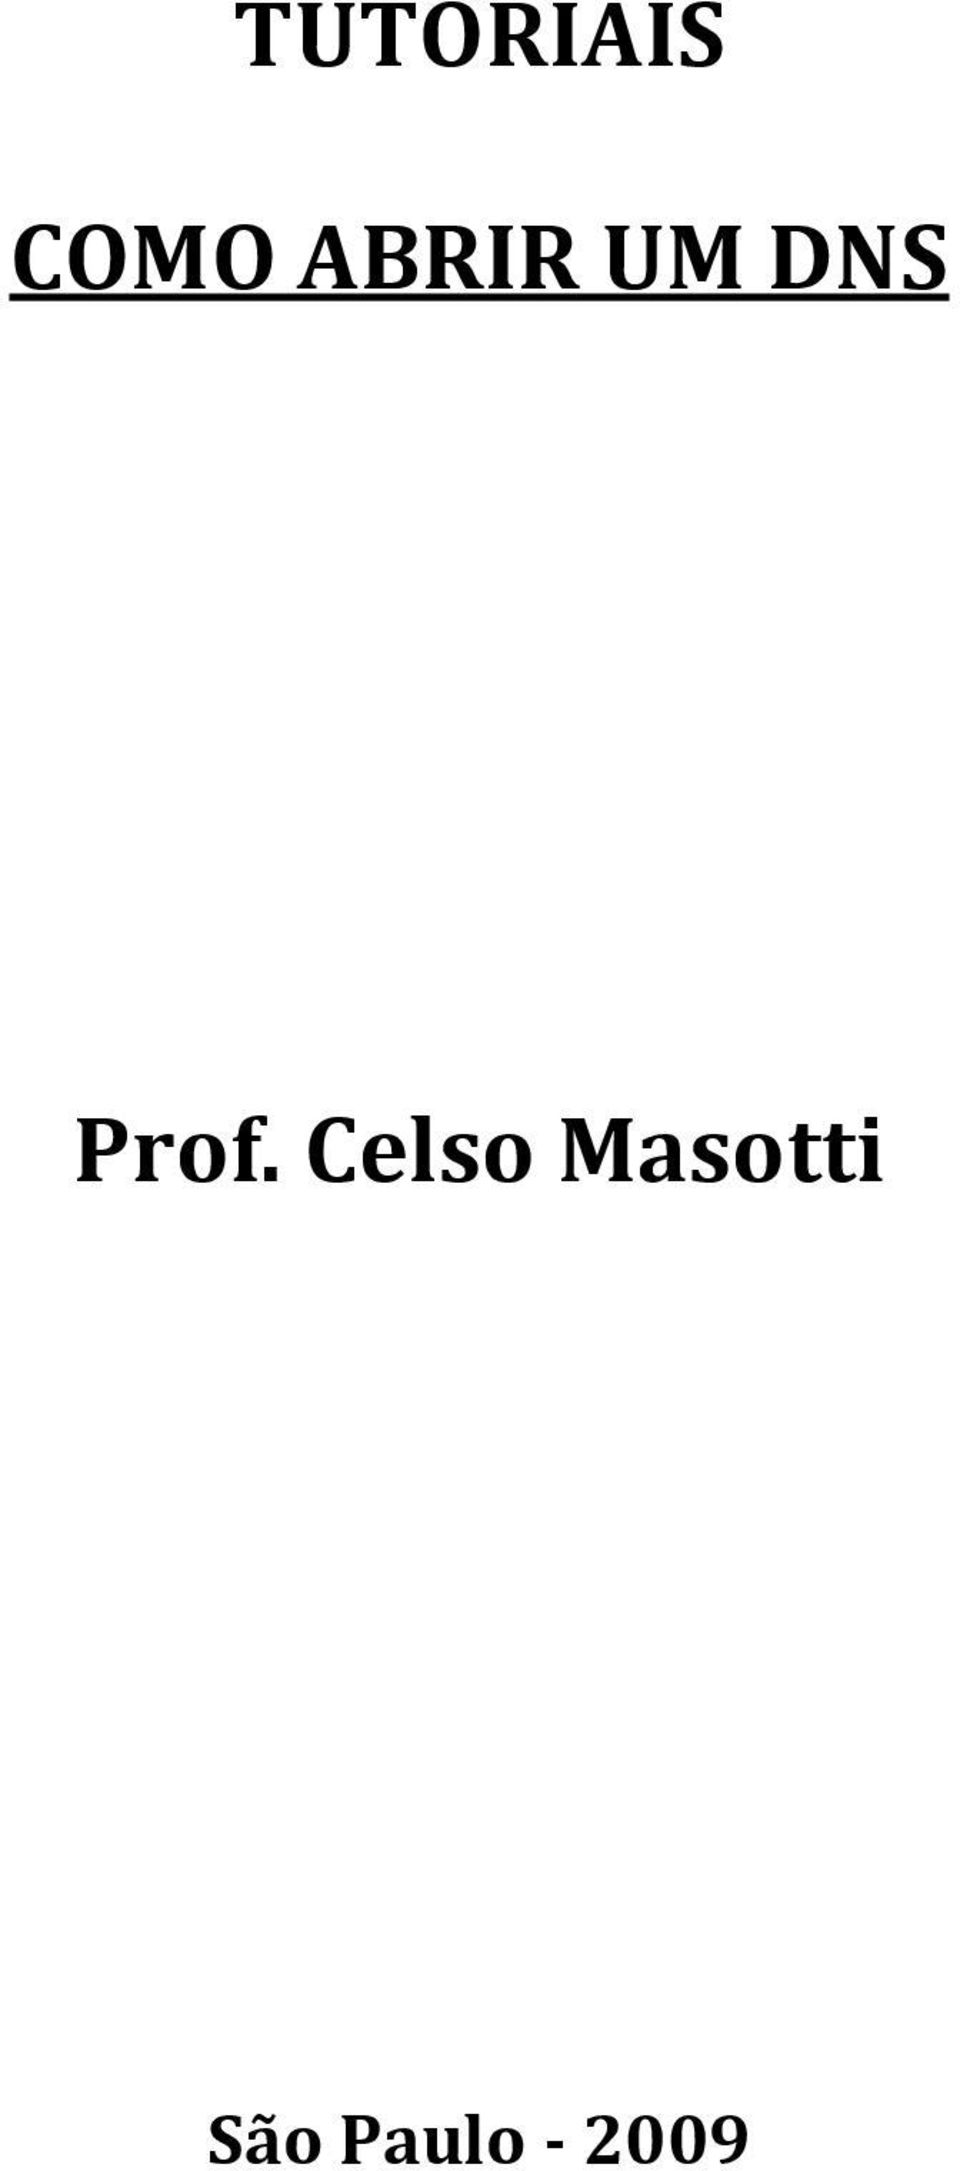 Prof. Celso